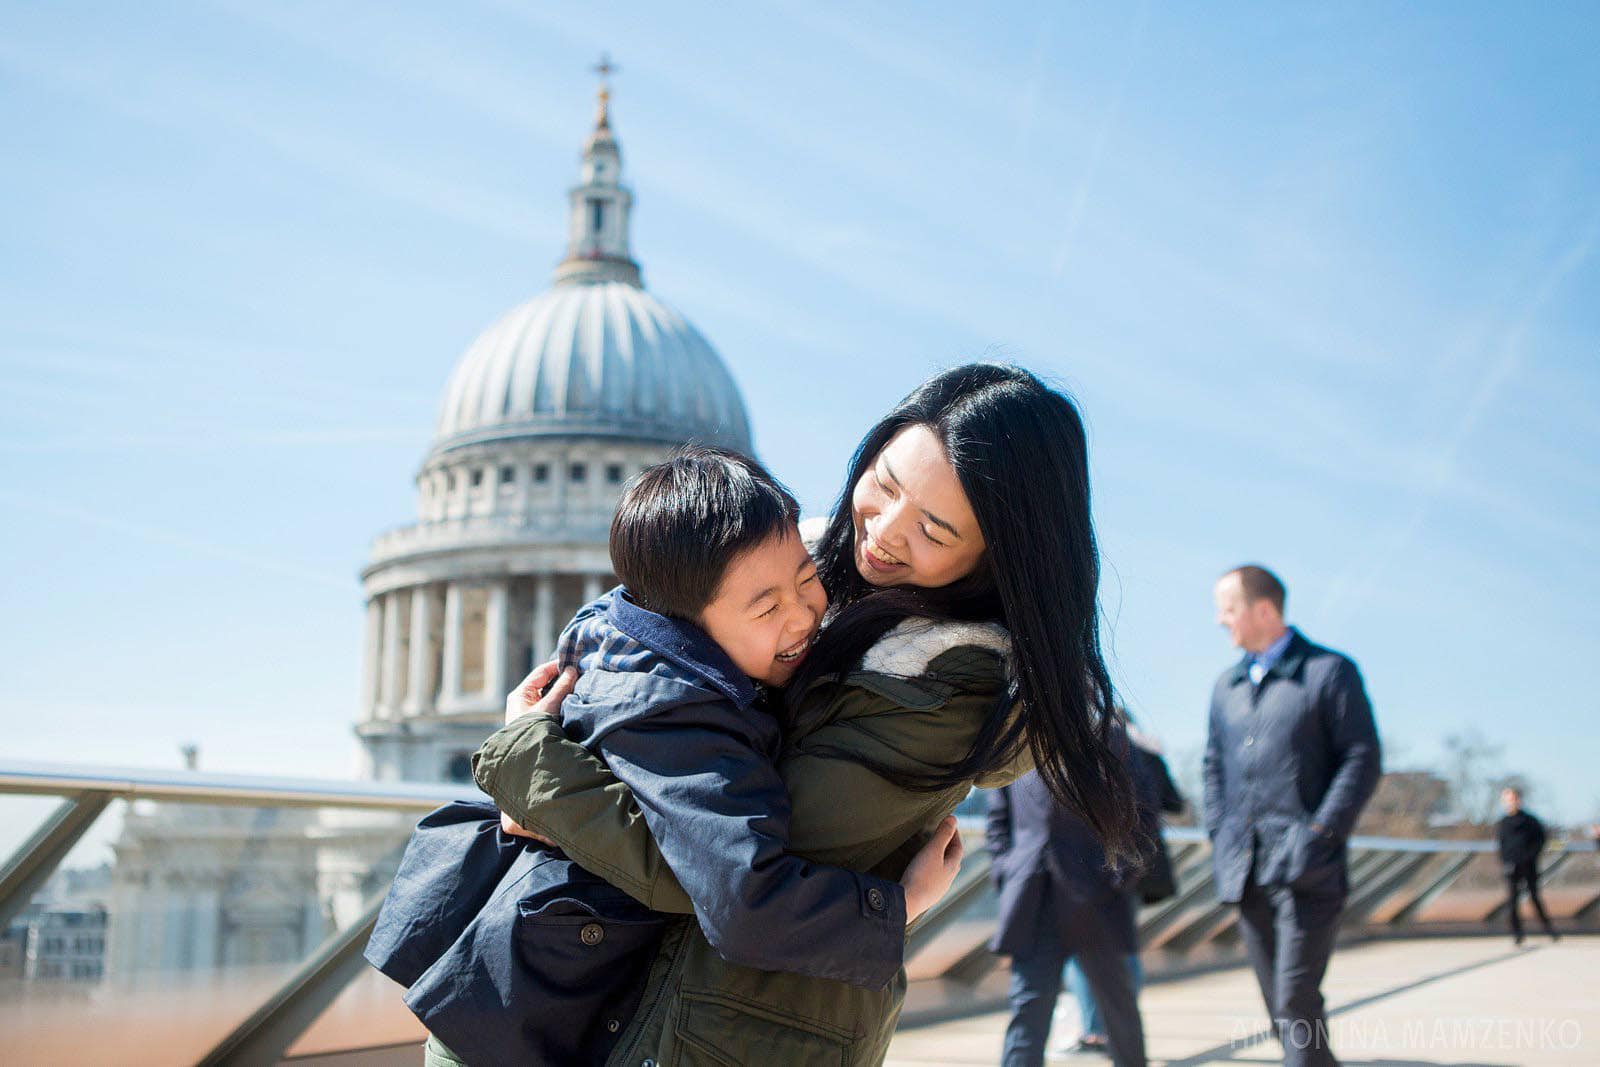 mother and sun hugging on a rooftop with St Paul's Cathedral in the background